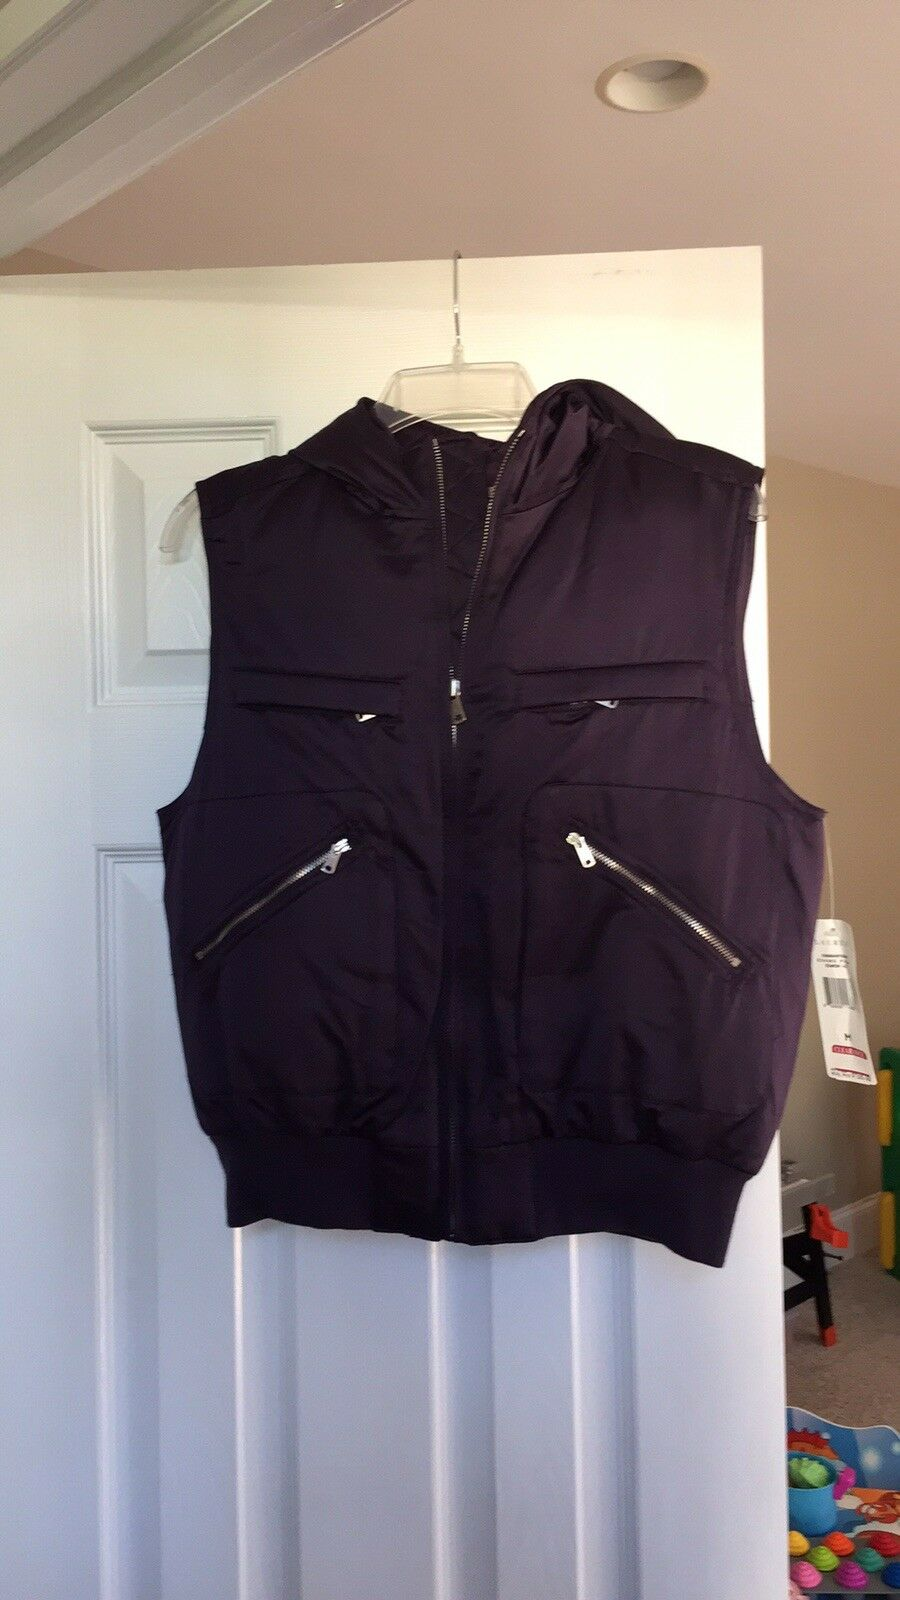 NWT Lauren Ralph Lauren Purple Hooded Puffer Vest Size Medium Women's